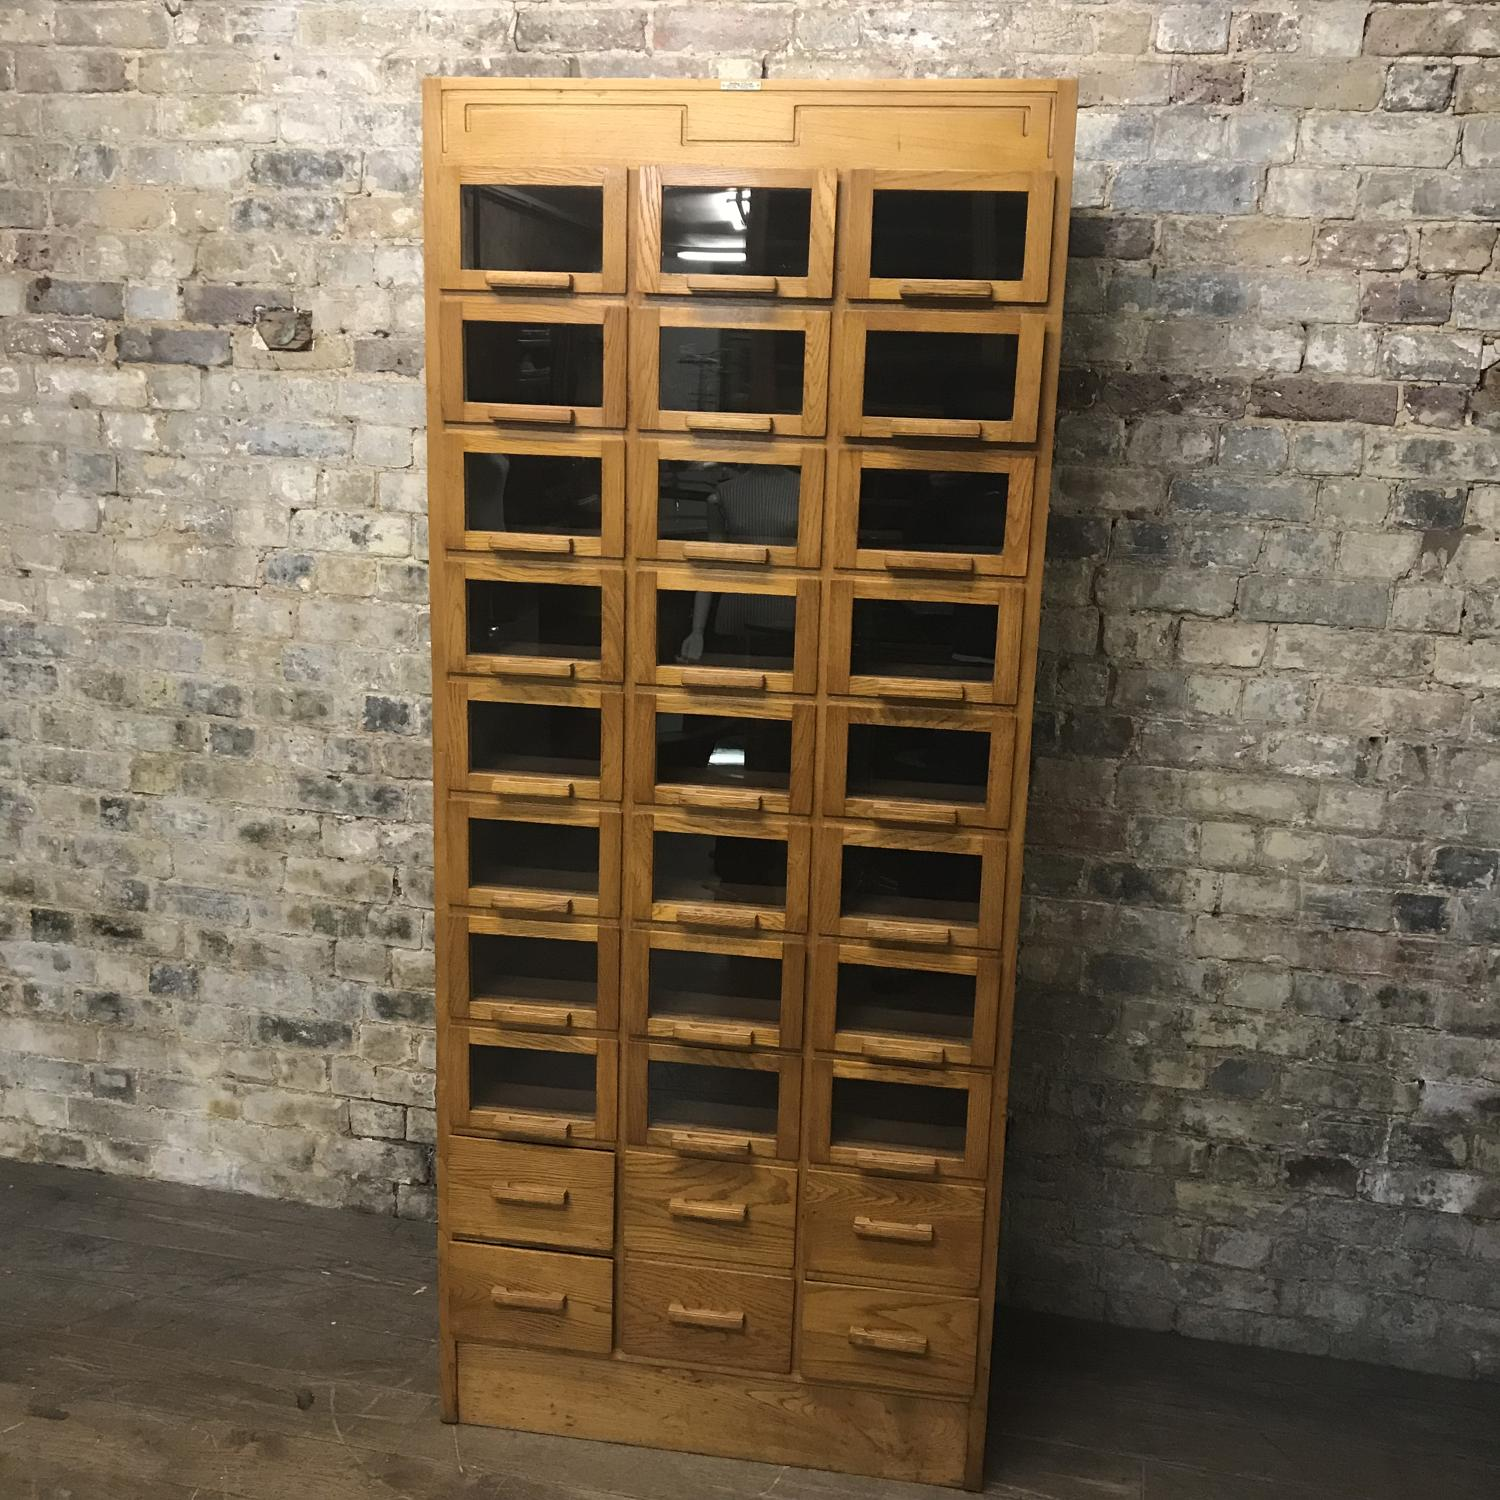 Antique Oak Dudley & co  Haberdashery Shop Display Drawers Cabinet